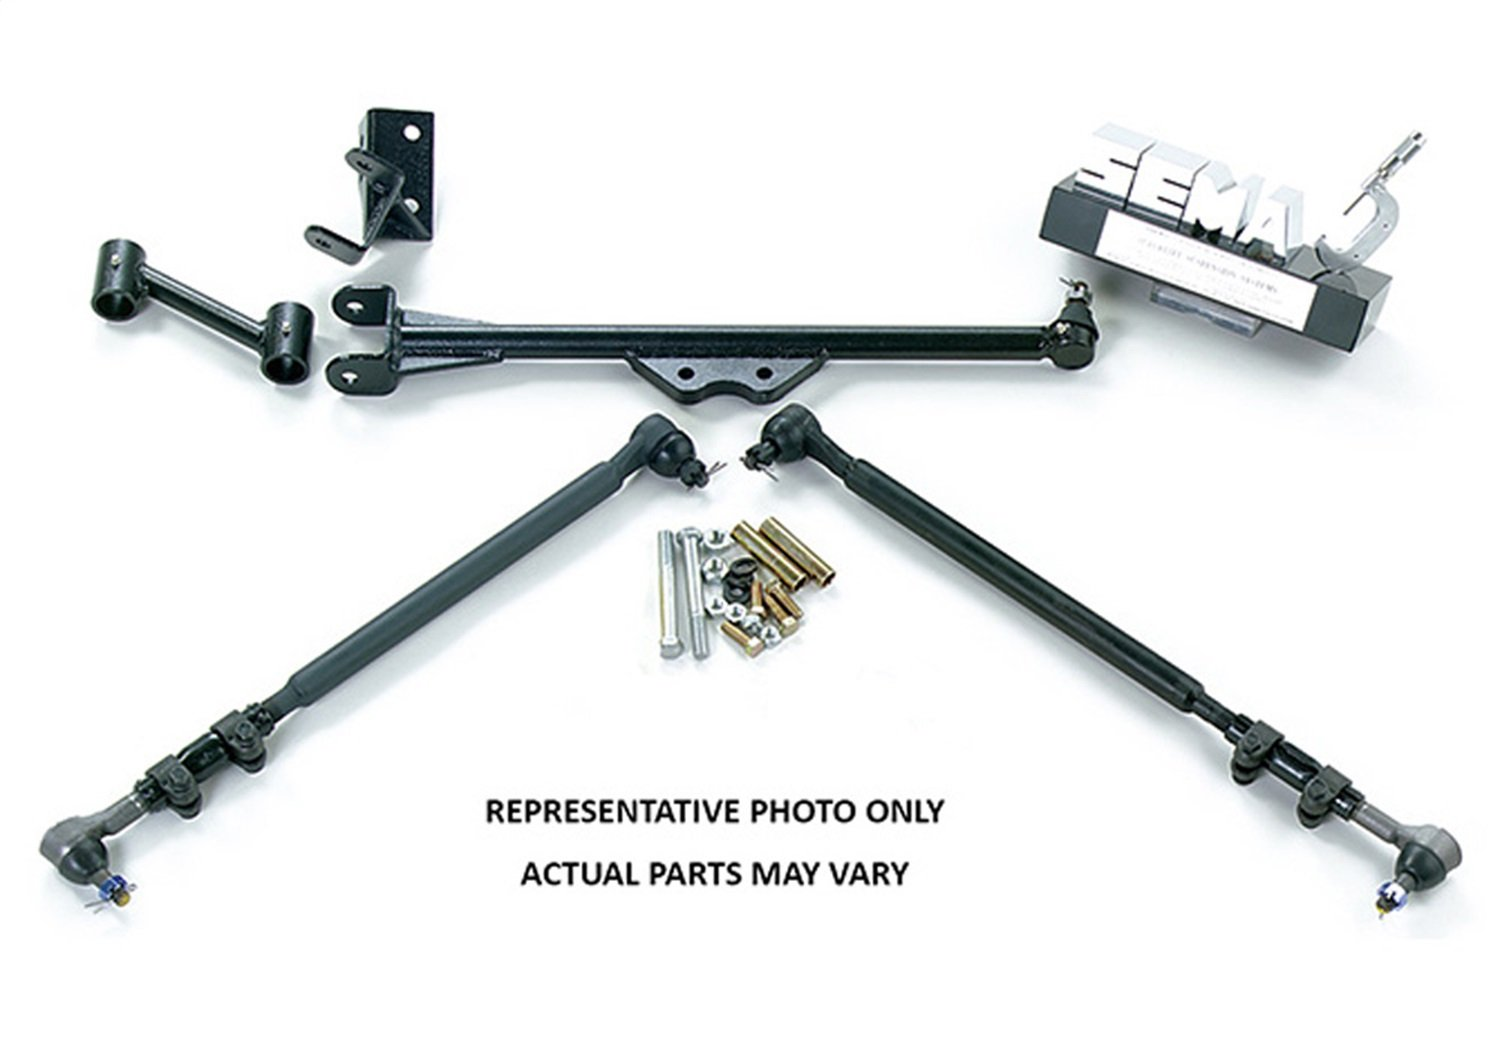 Superlift Suspension | 1024 | Superunner Steering Conversion - 1980-1996 Ford F-150 and Bronco - with 4-6'' Superlift Lift Kit